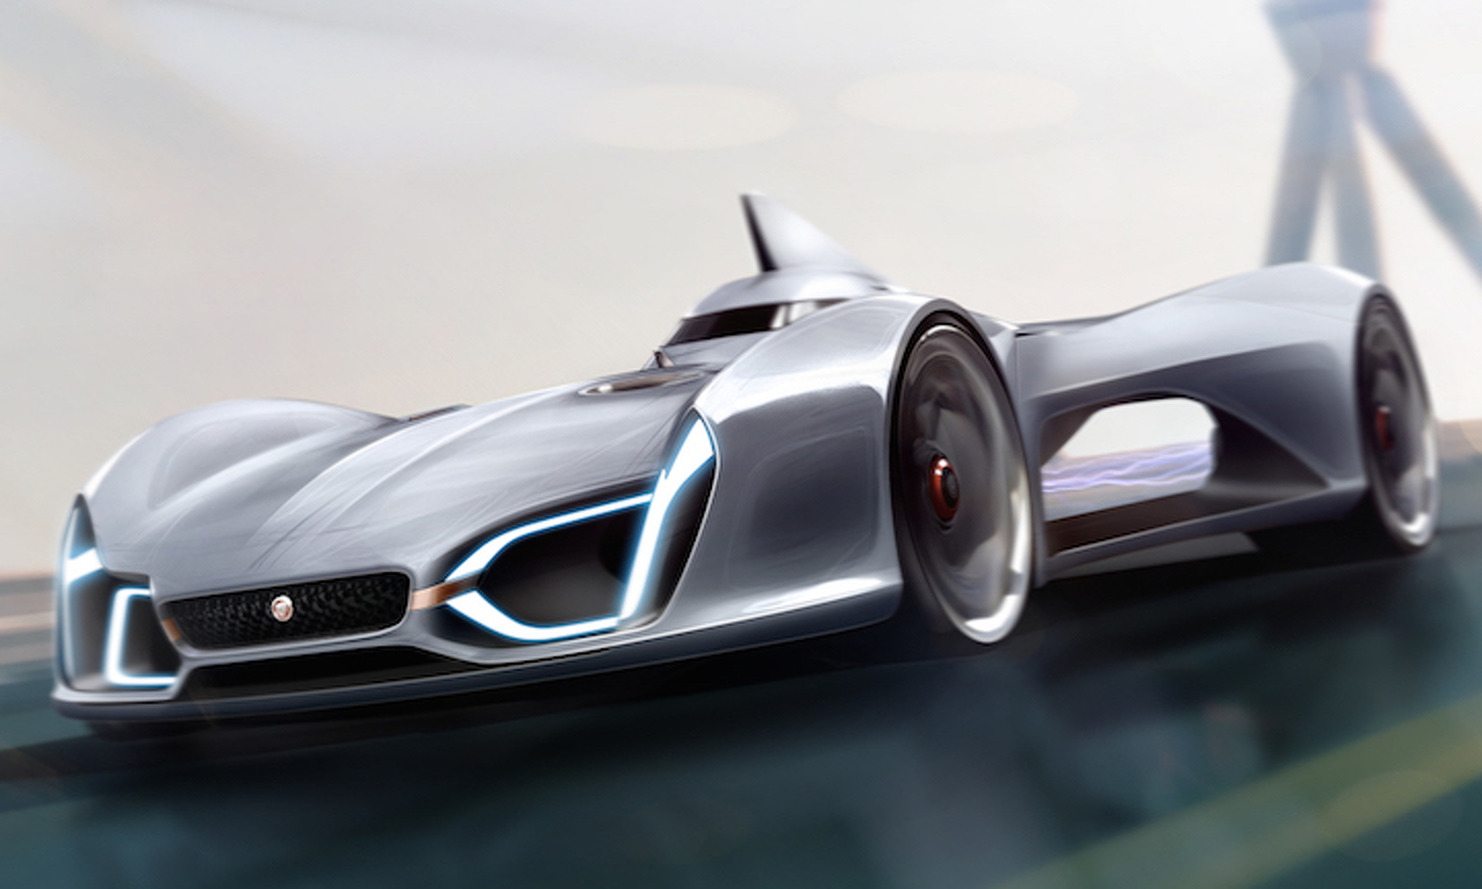 Jaguar Concept Car Pushes the Limits of Technology and Design